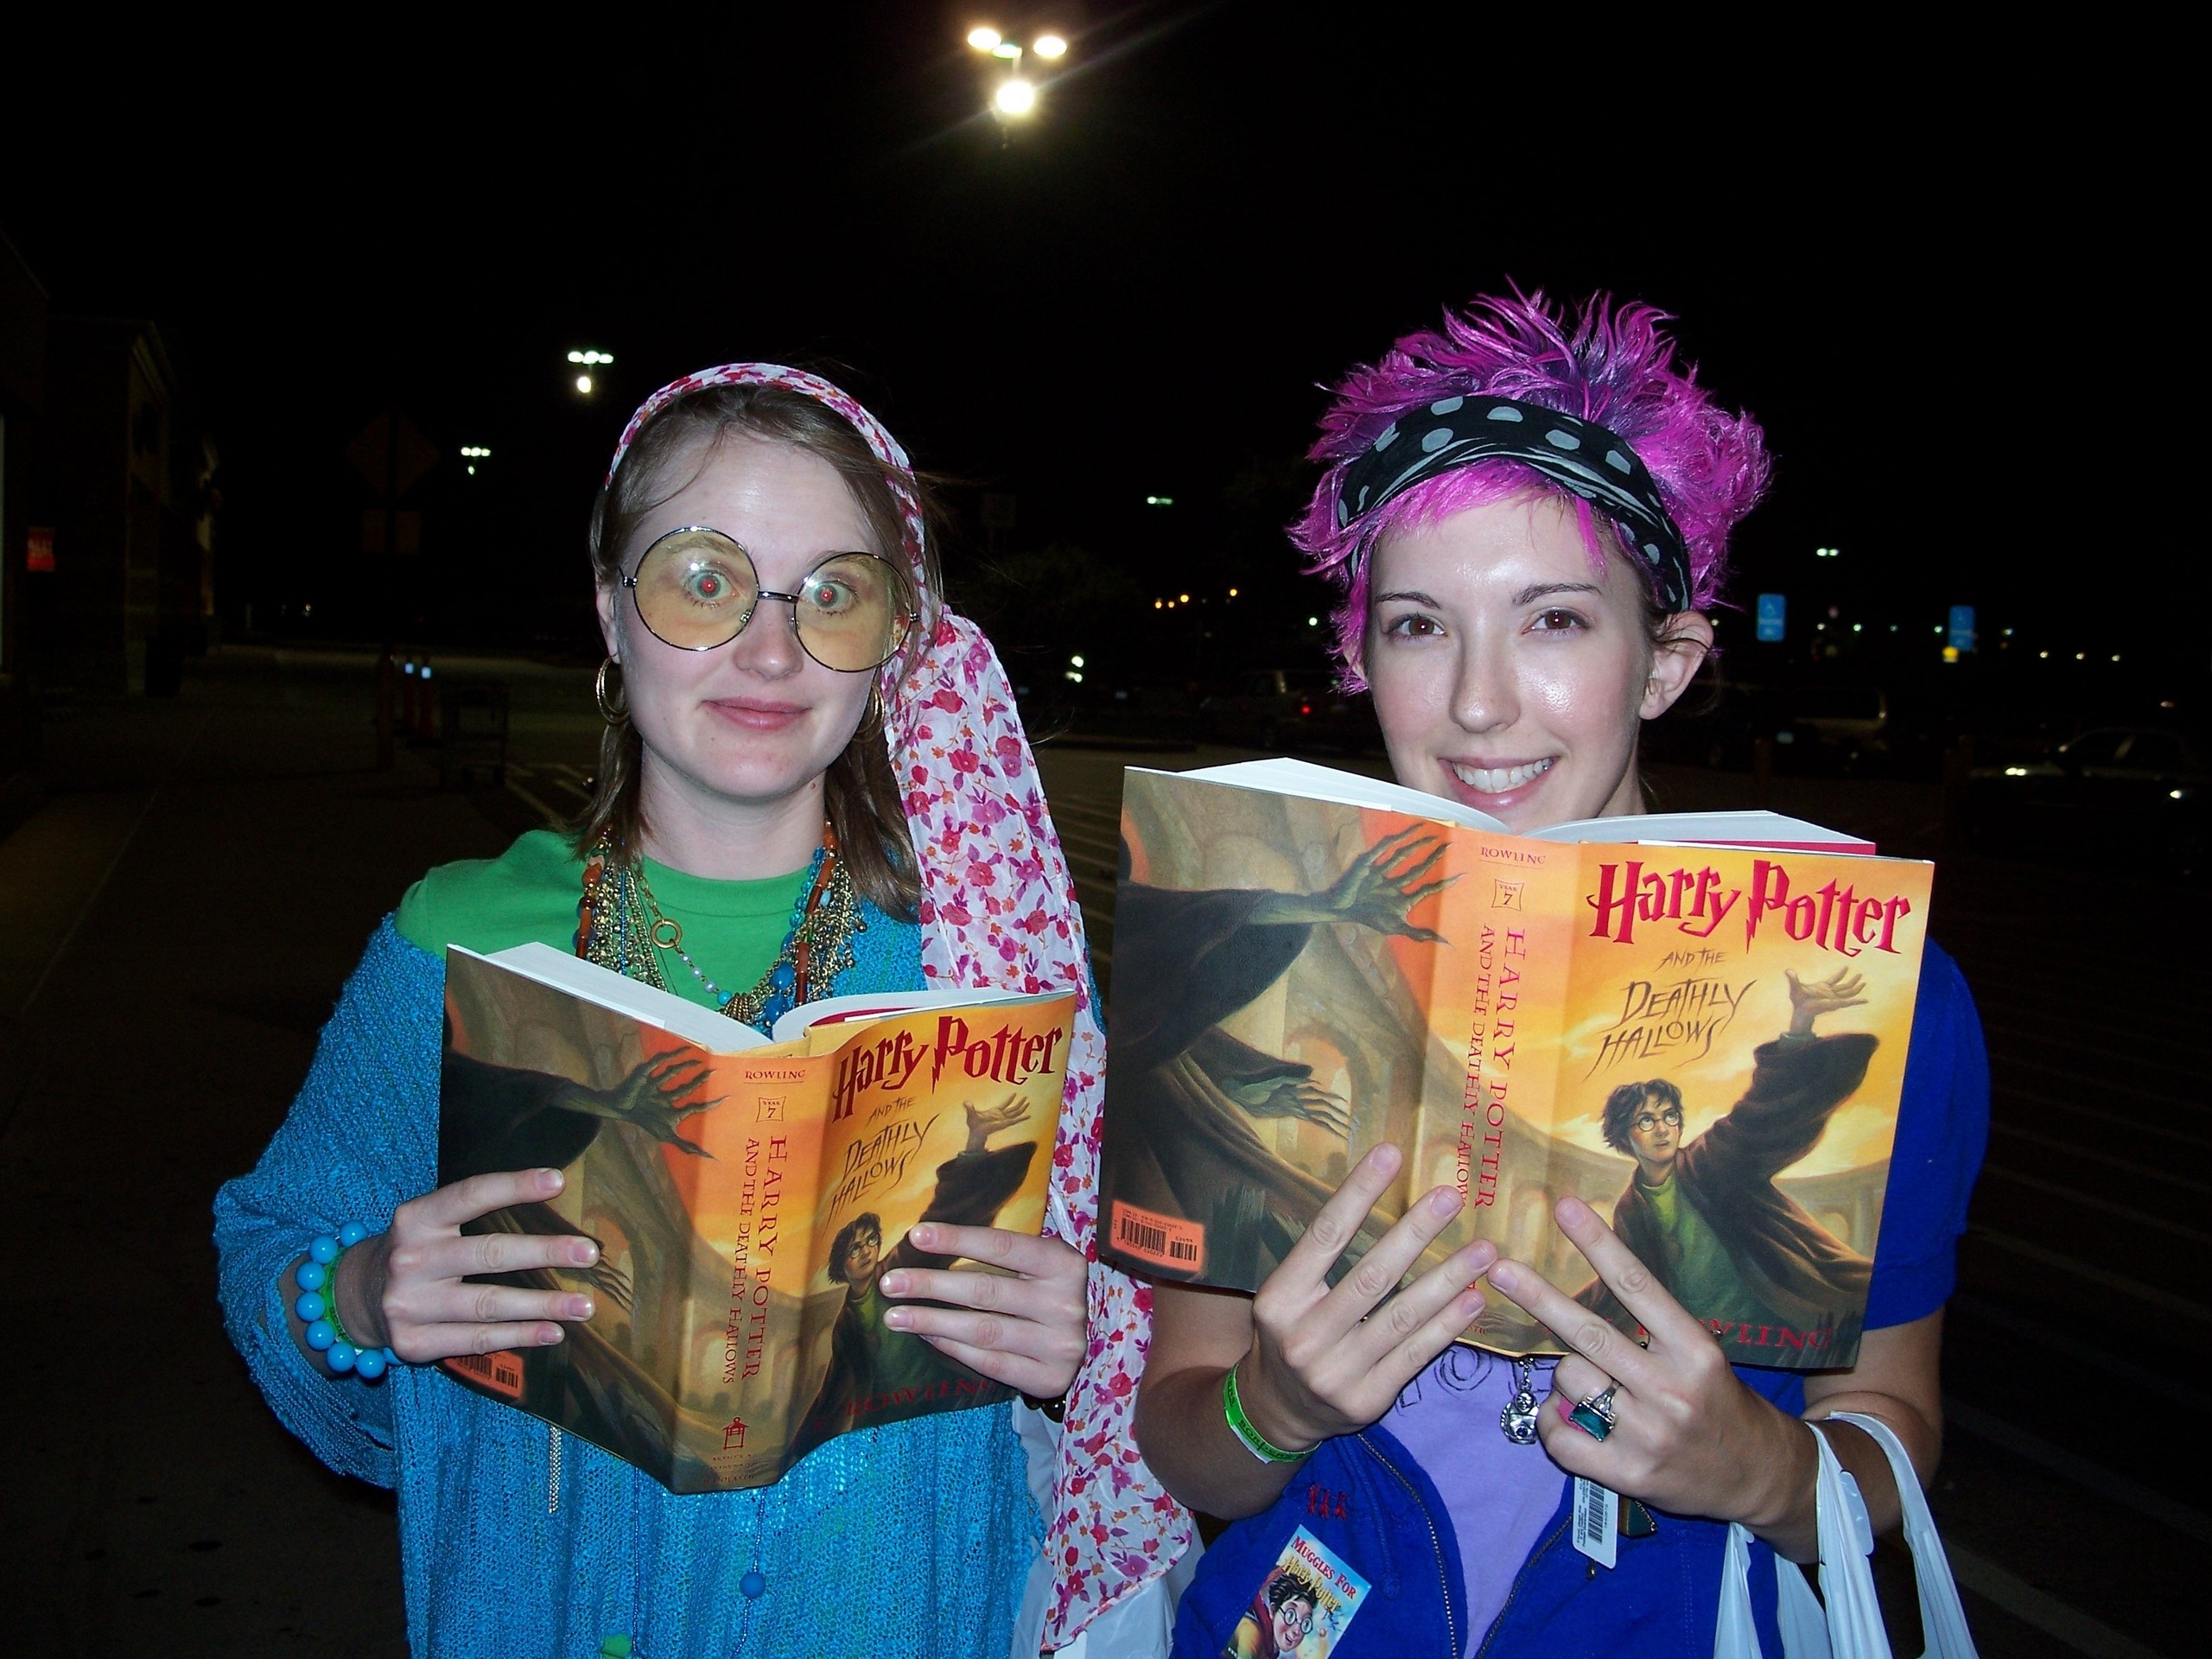 harry potter fangirl - photo #1